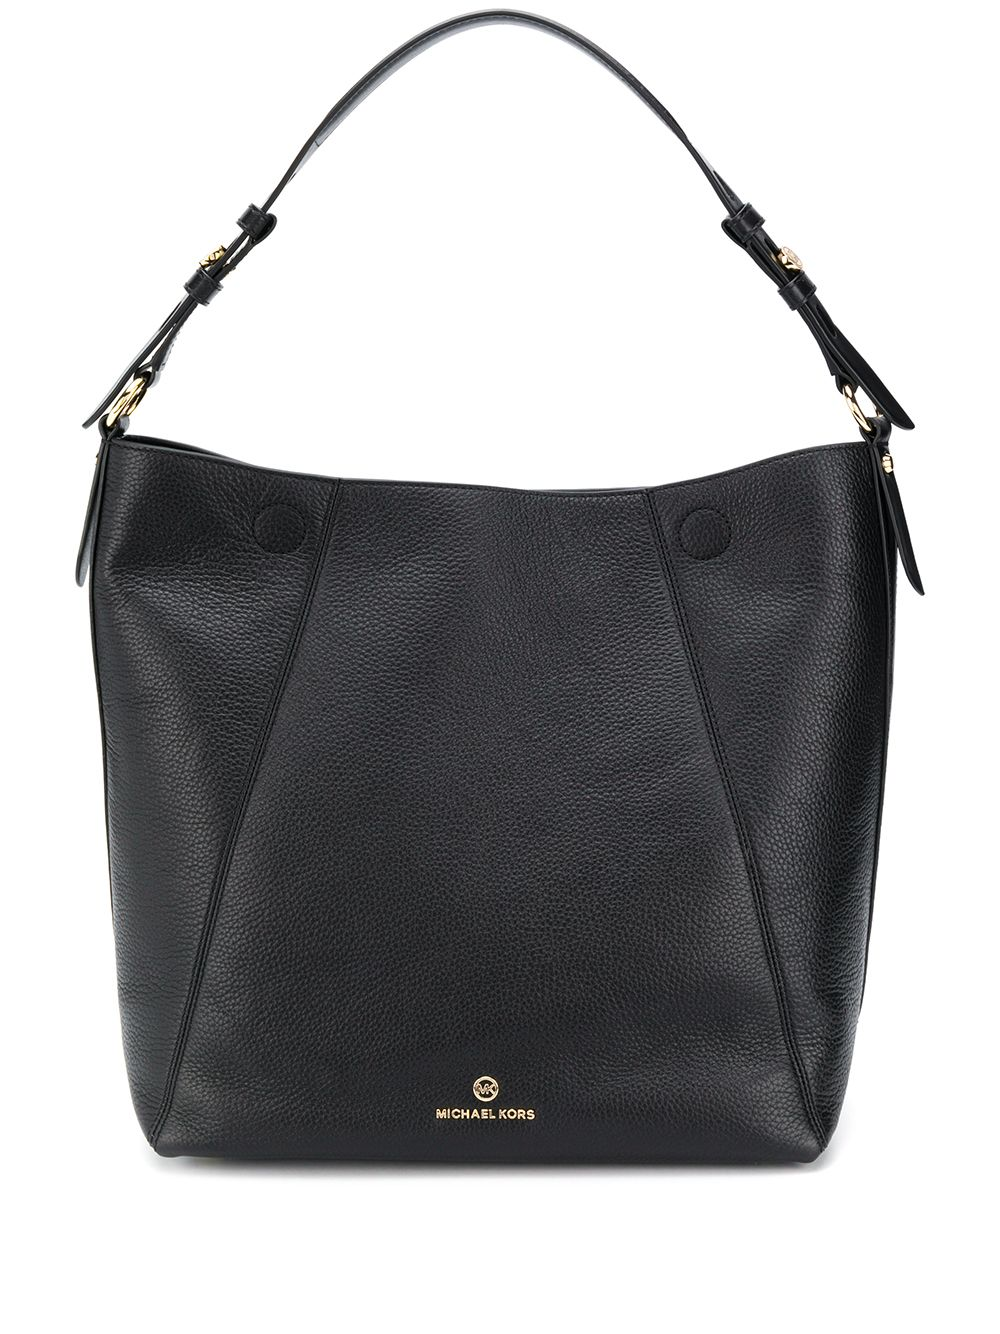 Lucy Large Leather Shoulder Bag